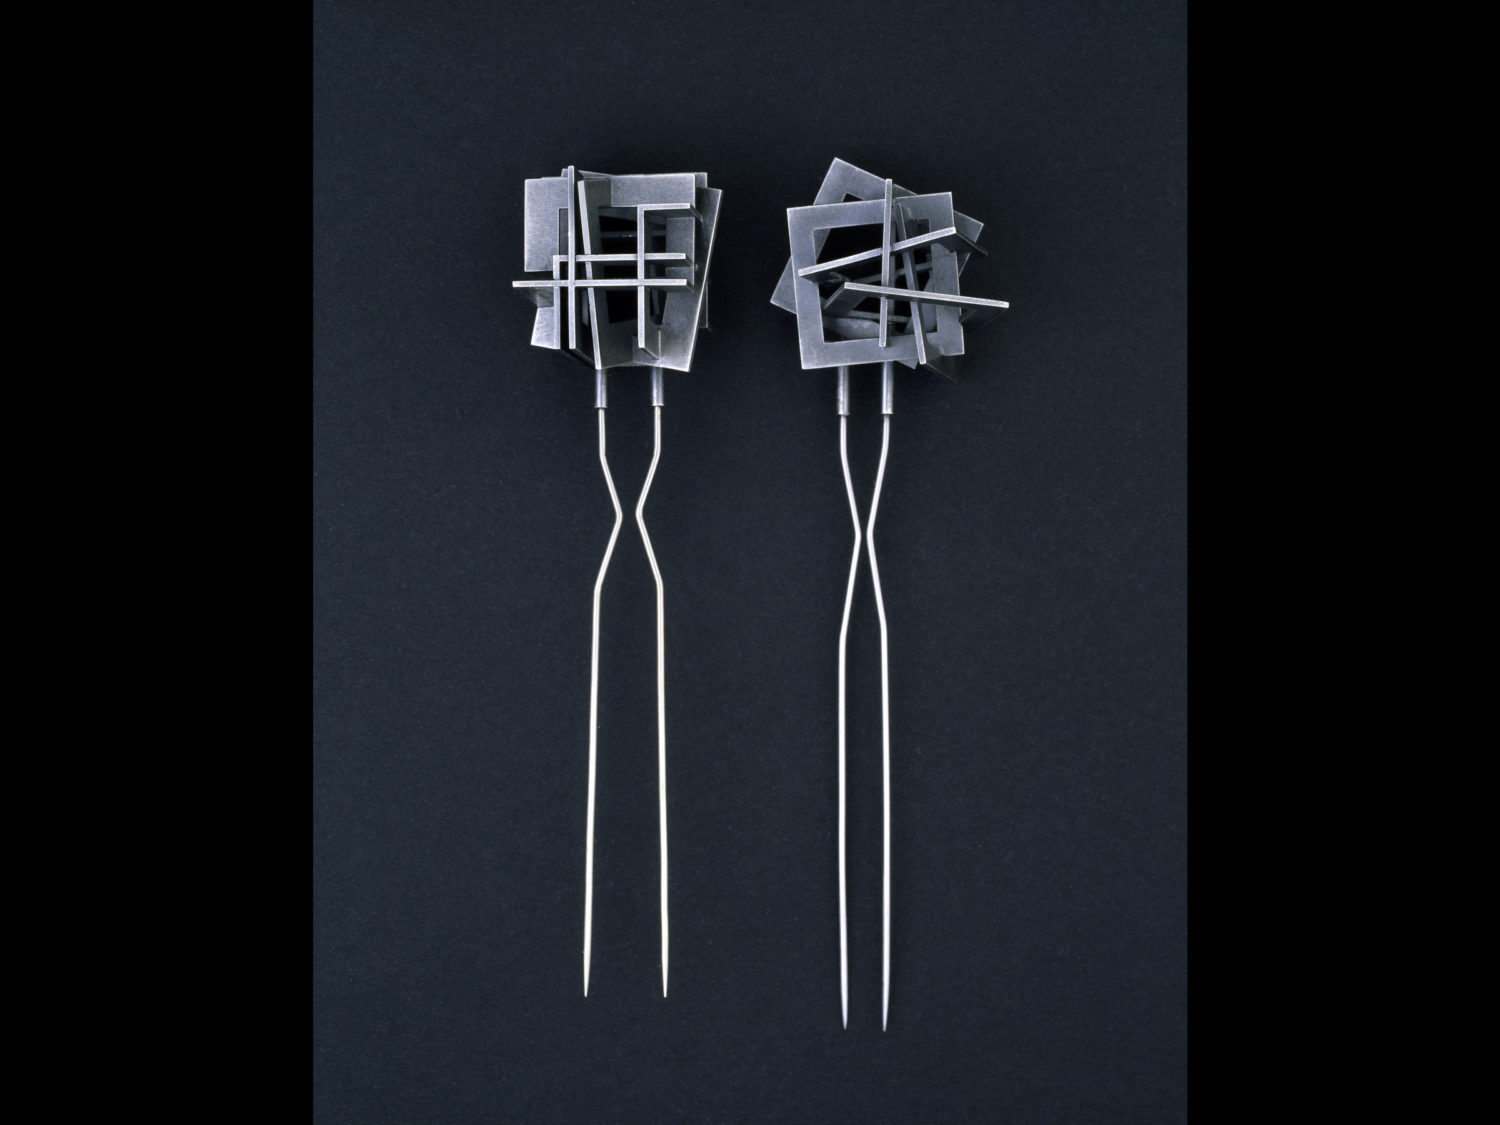 Brooch, oxidized silver, stainless steel, 2002/2006